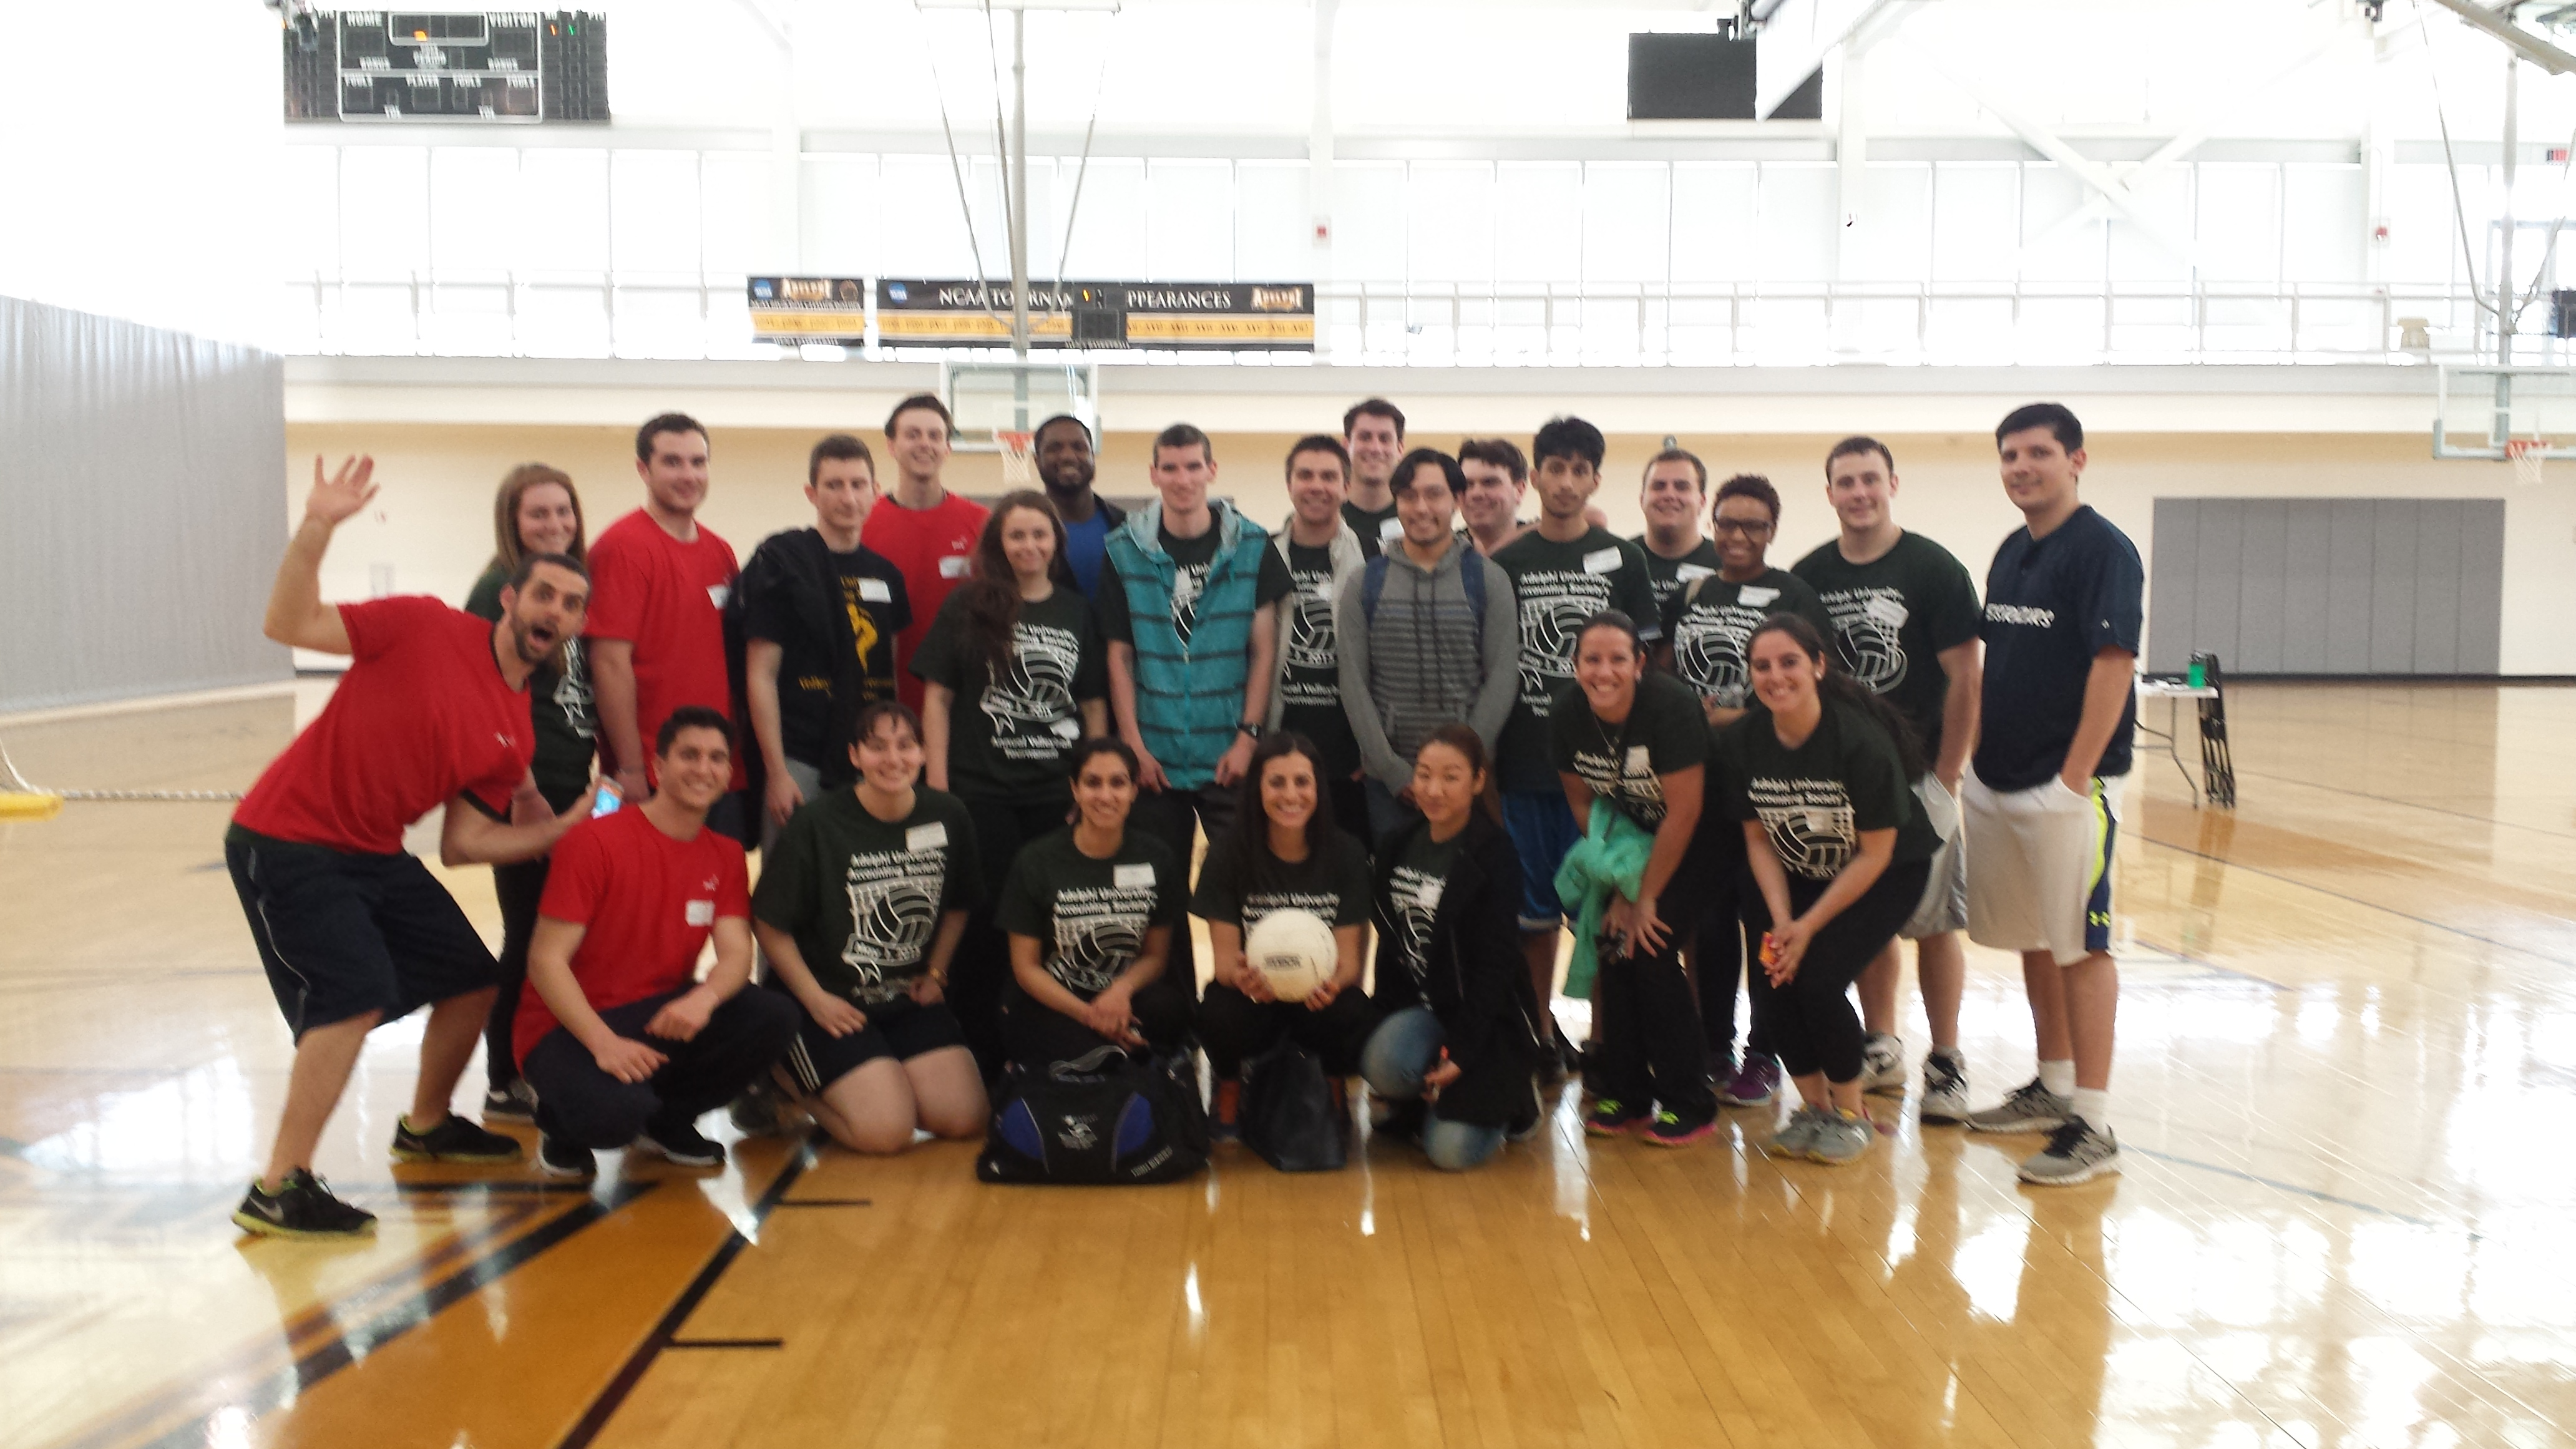 Accounting Society Volleyball Tournament 2015